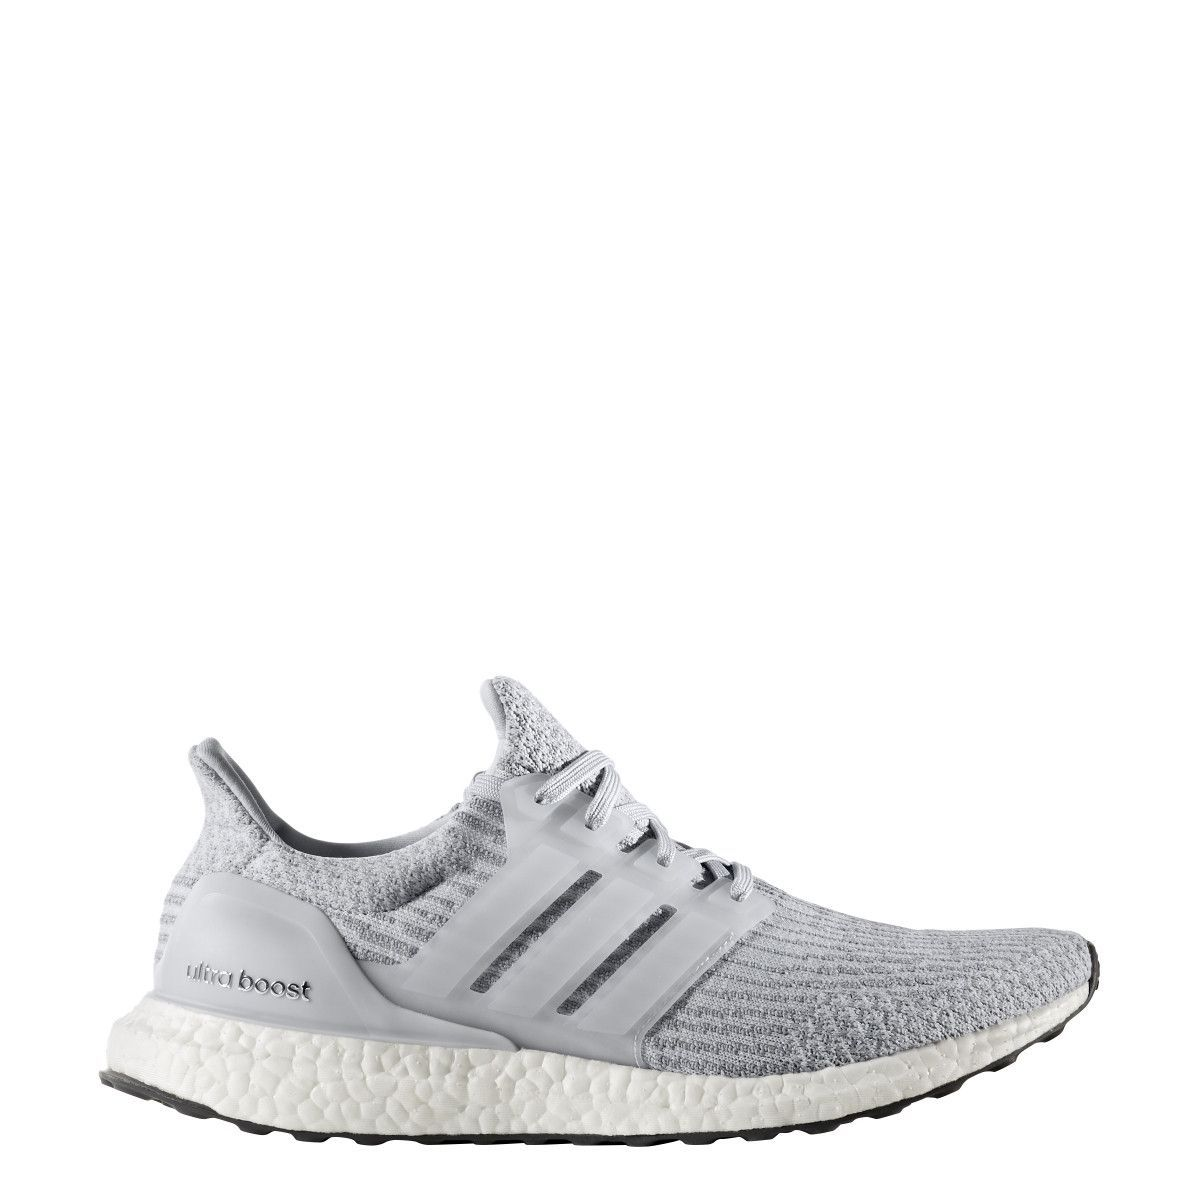 31011681f98 ADIDAS ULTRA BOOST 3.0 MENS SNEAKERS